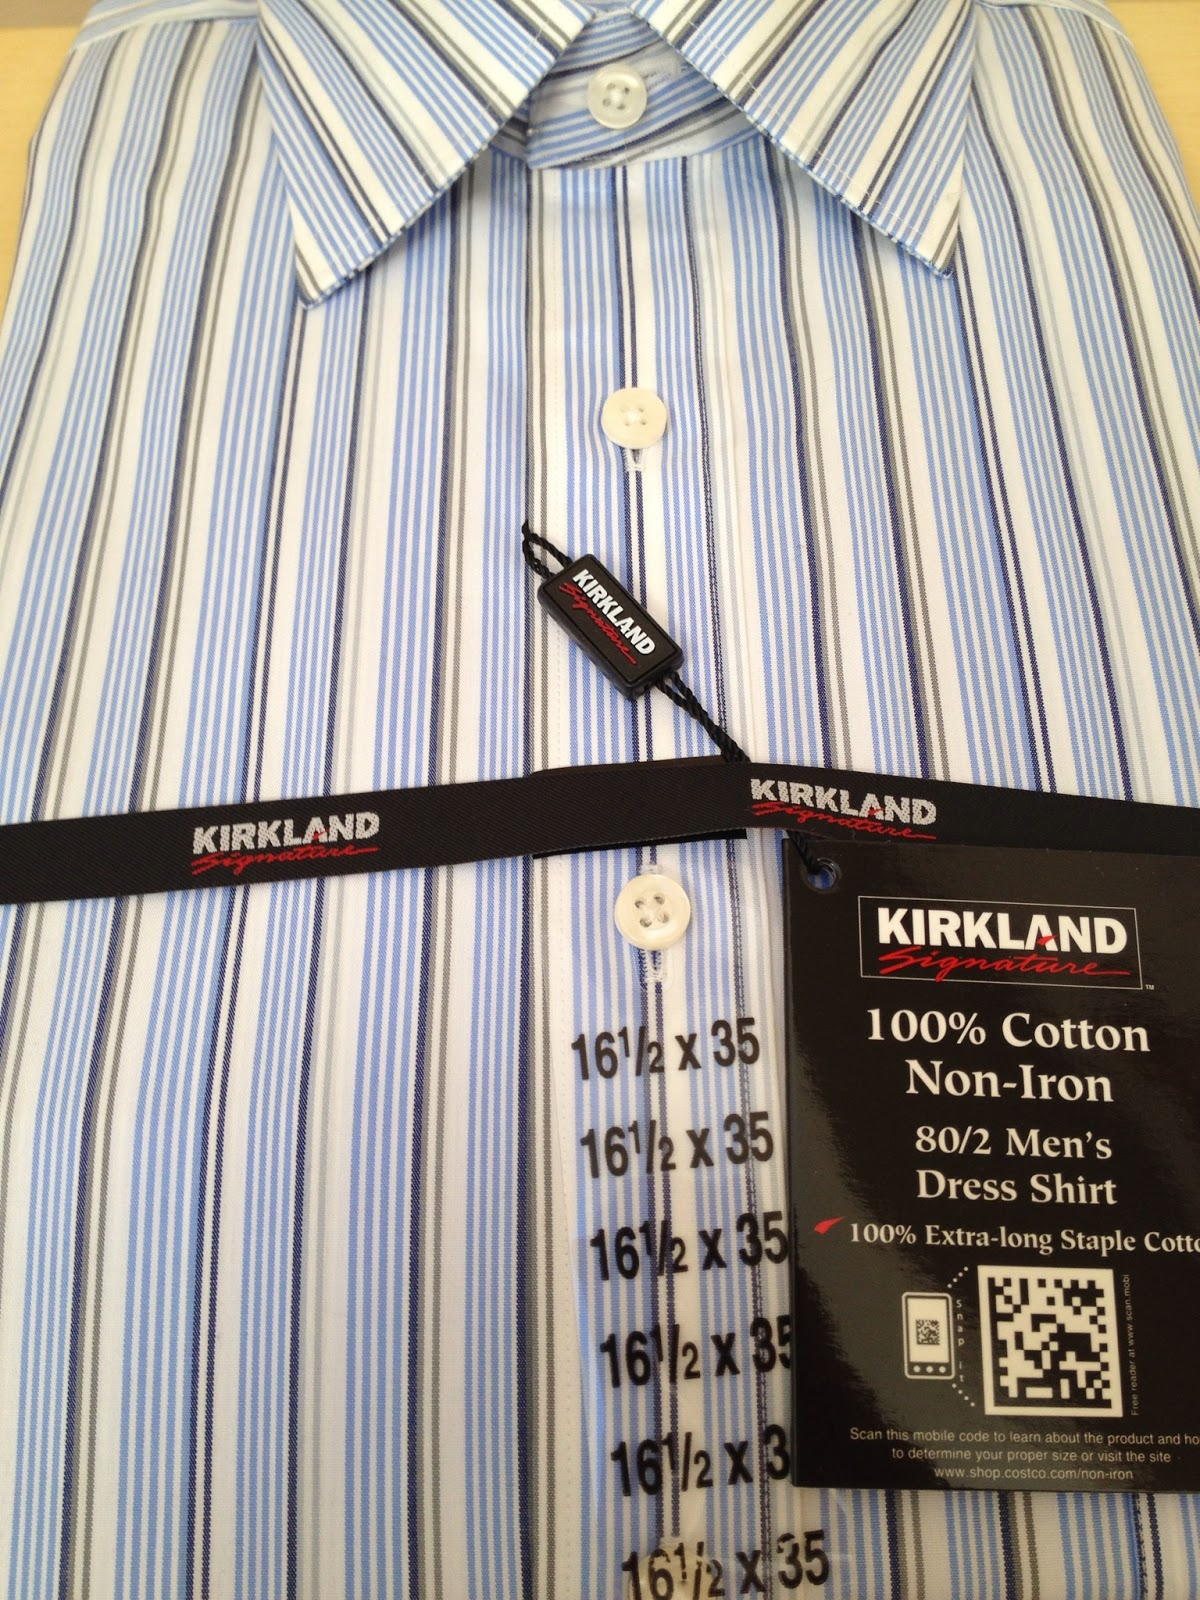 Do You Really Know What Youre Eating Costco Dress Shirt Is A